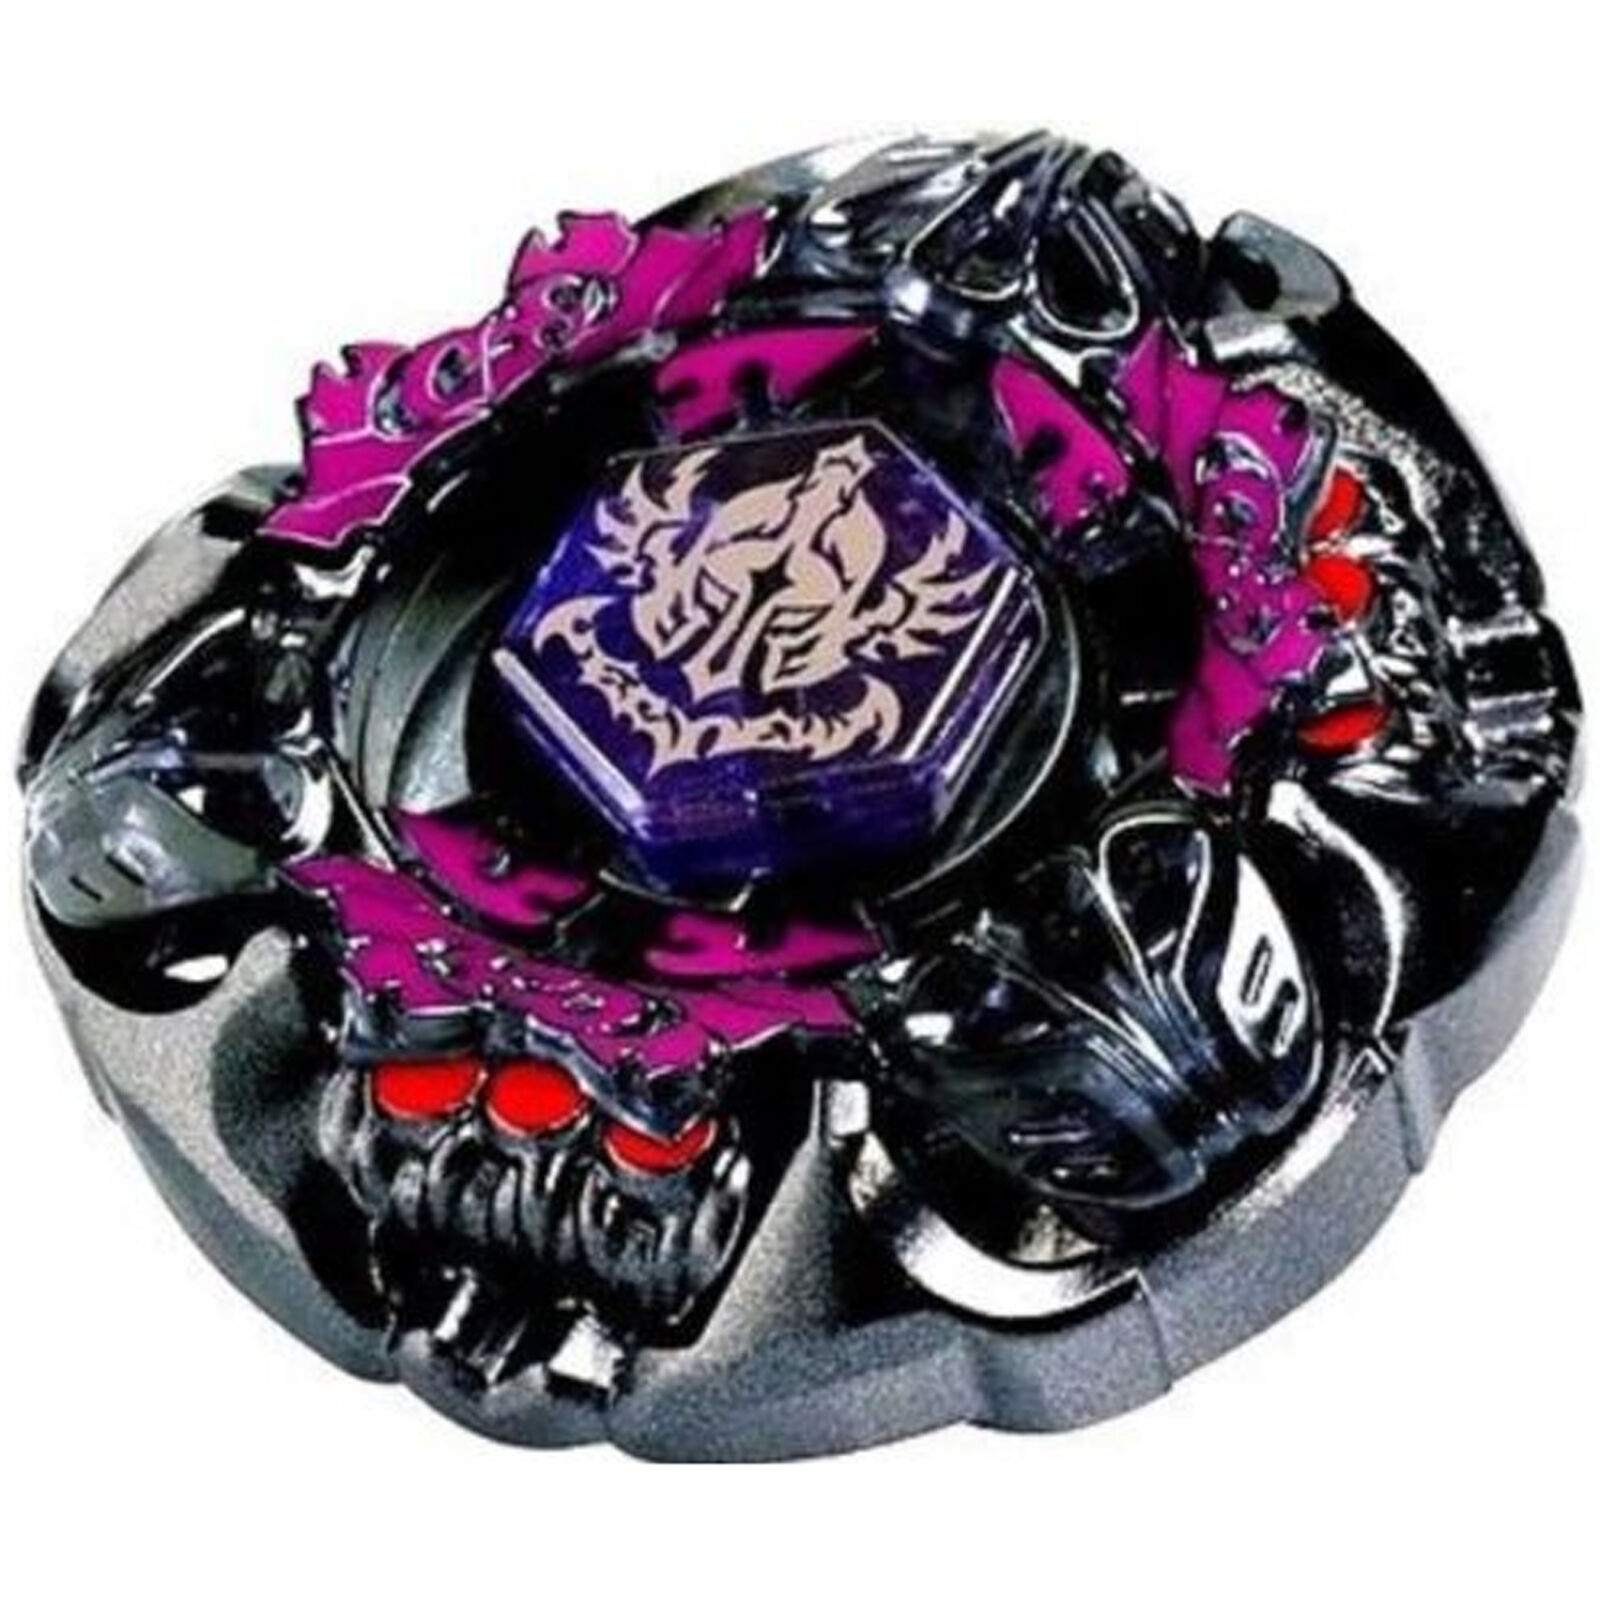 4d beyblade bb80 with launcher gravity destroyer perseus ad145wd metal masters ebay - Toupie beyblade nemesis ...